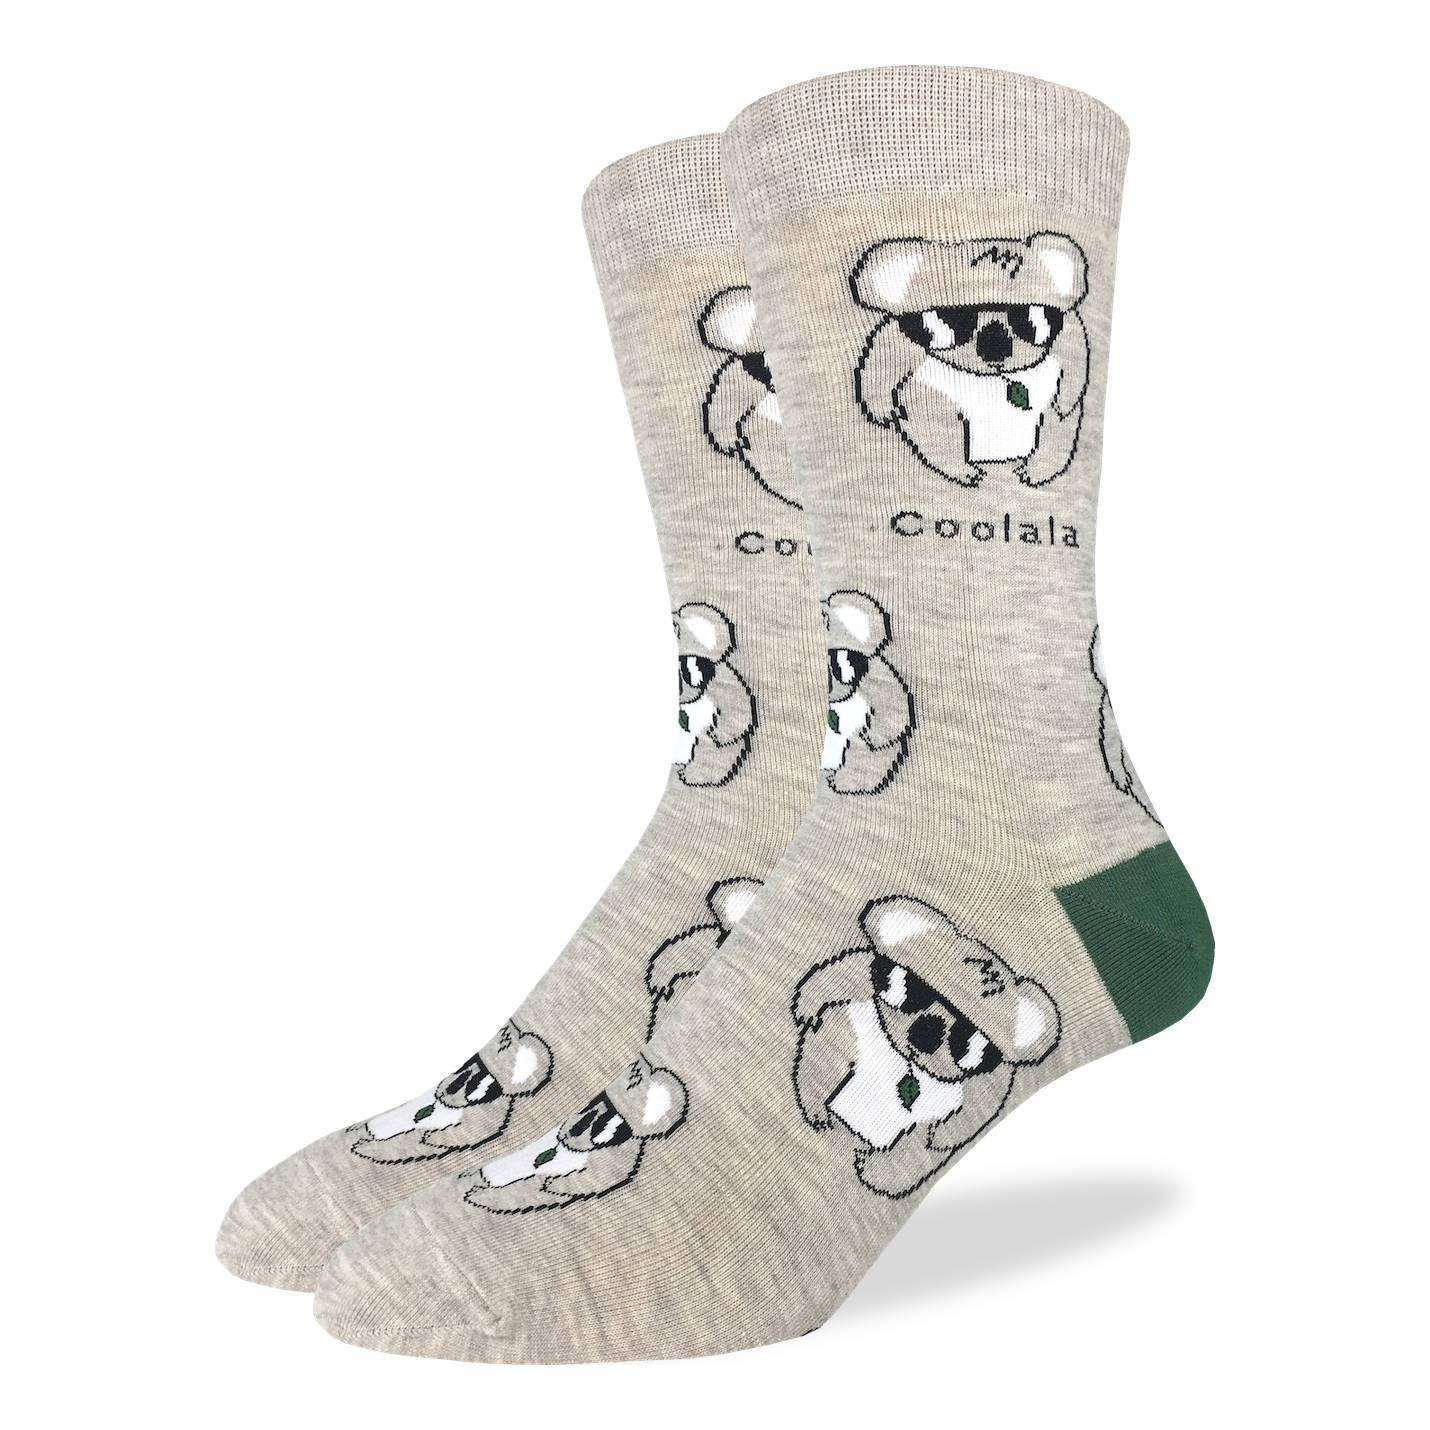 Men's Coolala Koala Socks - Good Luck Sock